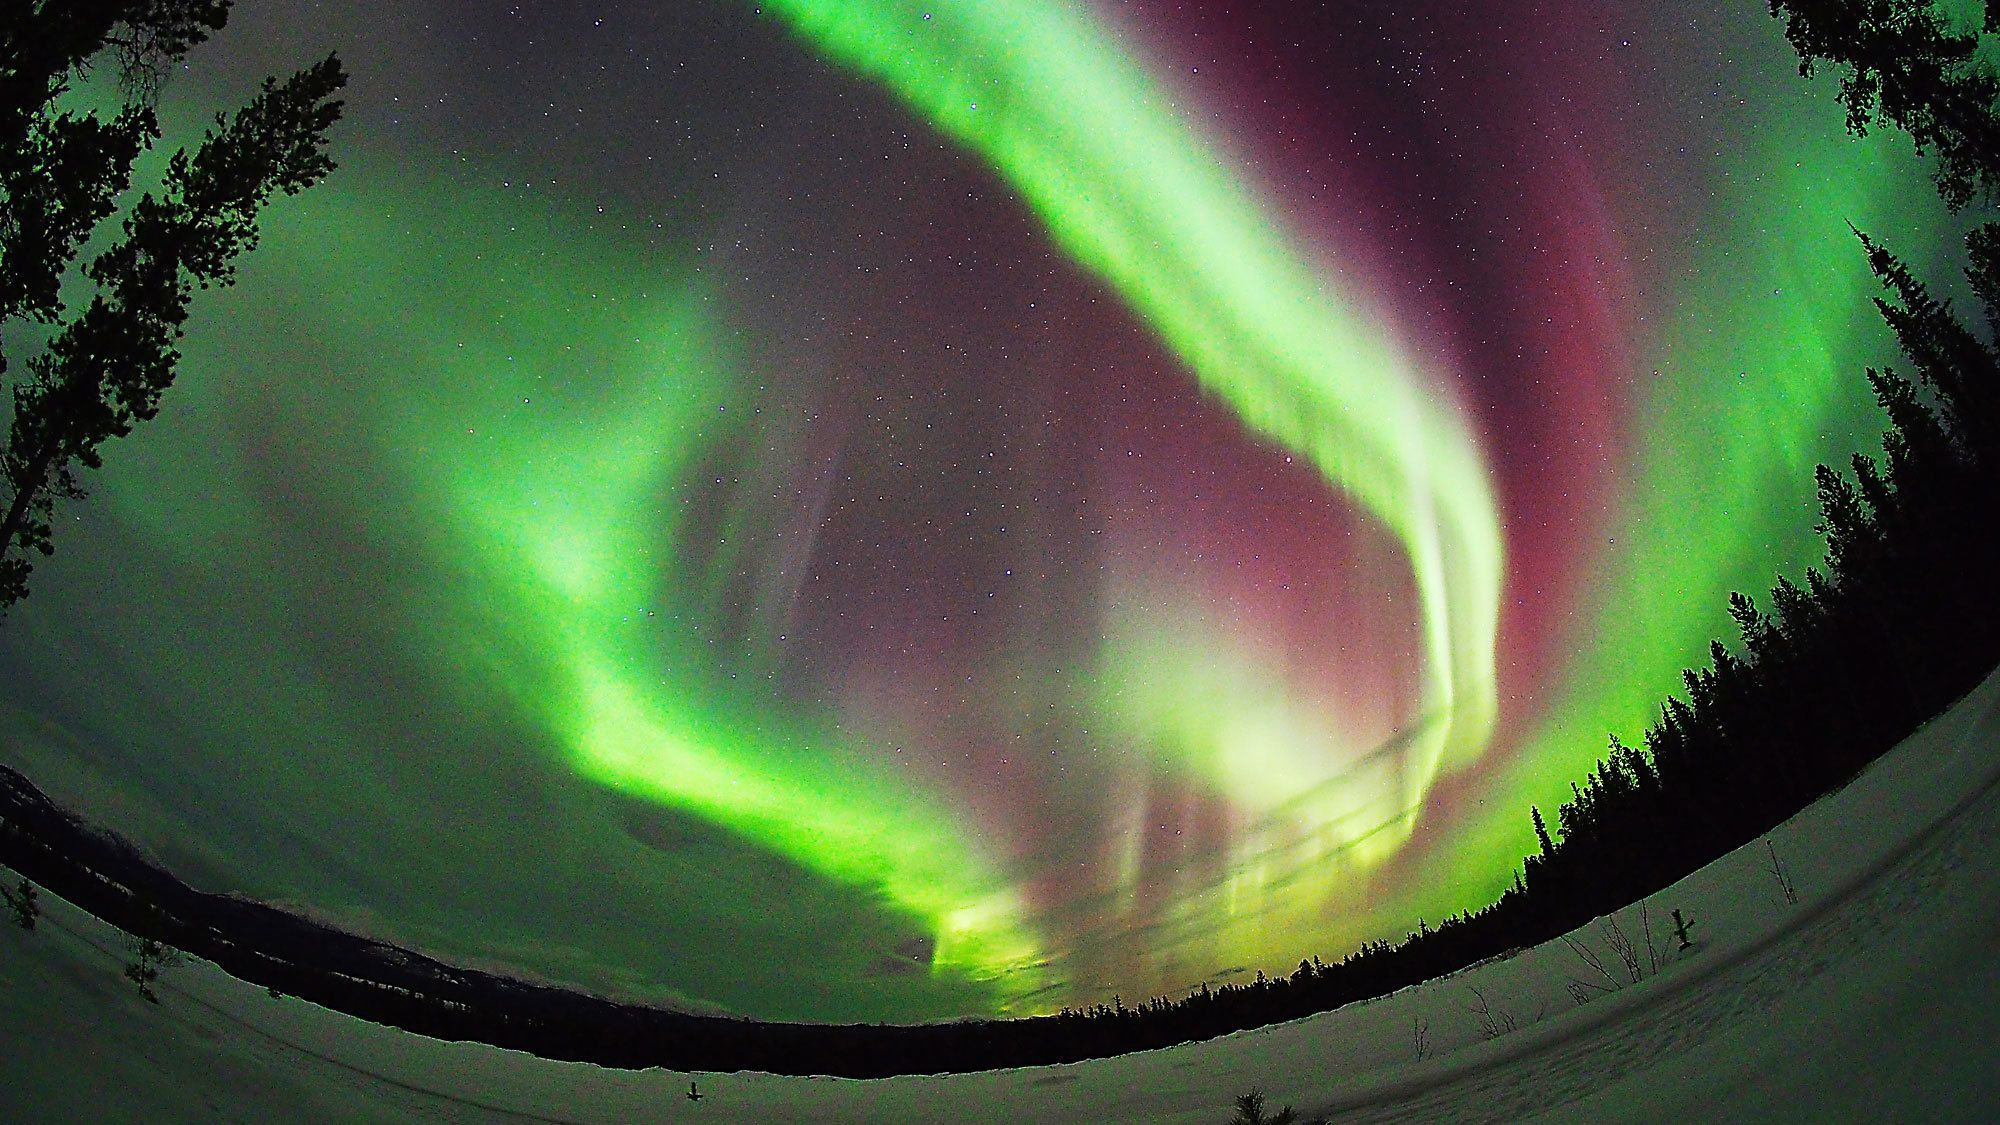 Breathtaking view of the Aurora Borealis in the Canada Territories